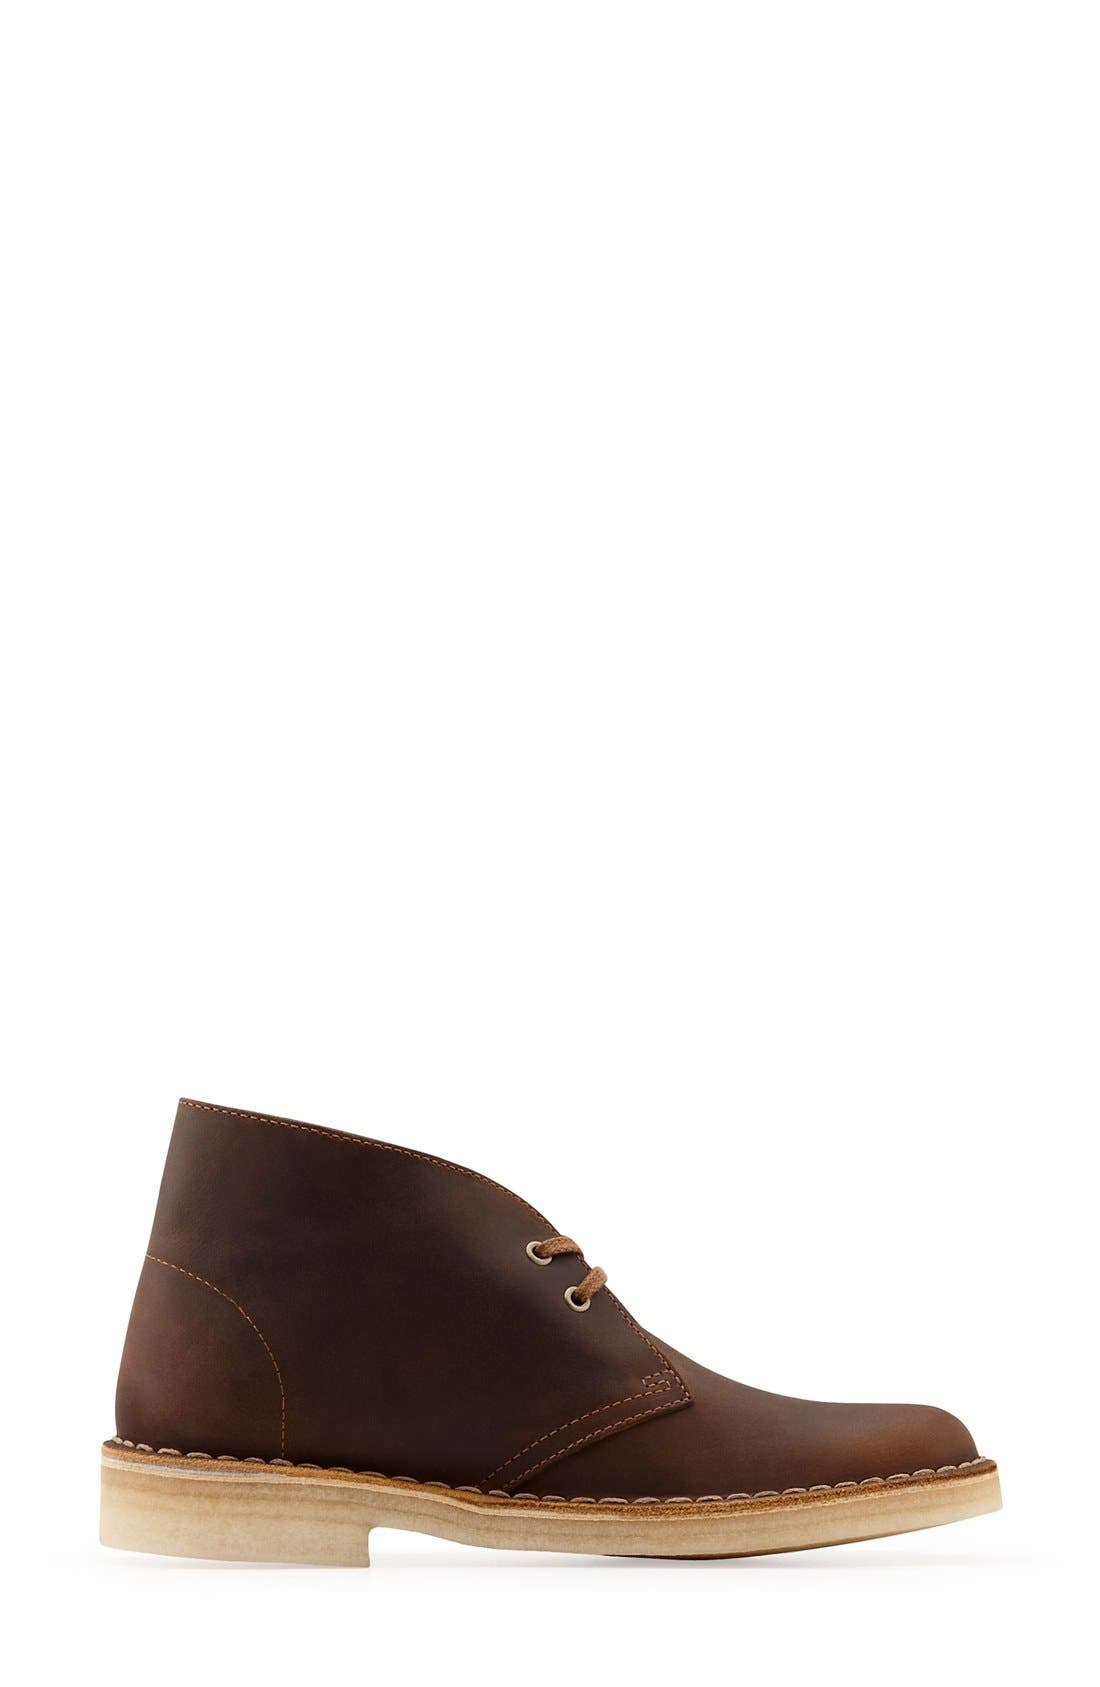 CLARKS<SUP>®</SUP>, Desert ChukkaBoot, Alternate thumbnail 2, color, BEESWAX LEATHER